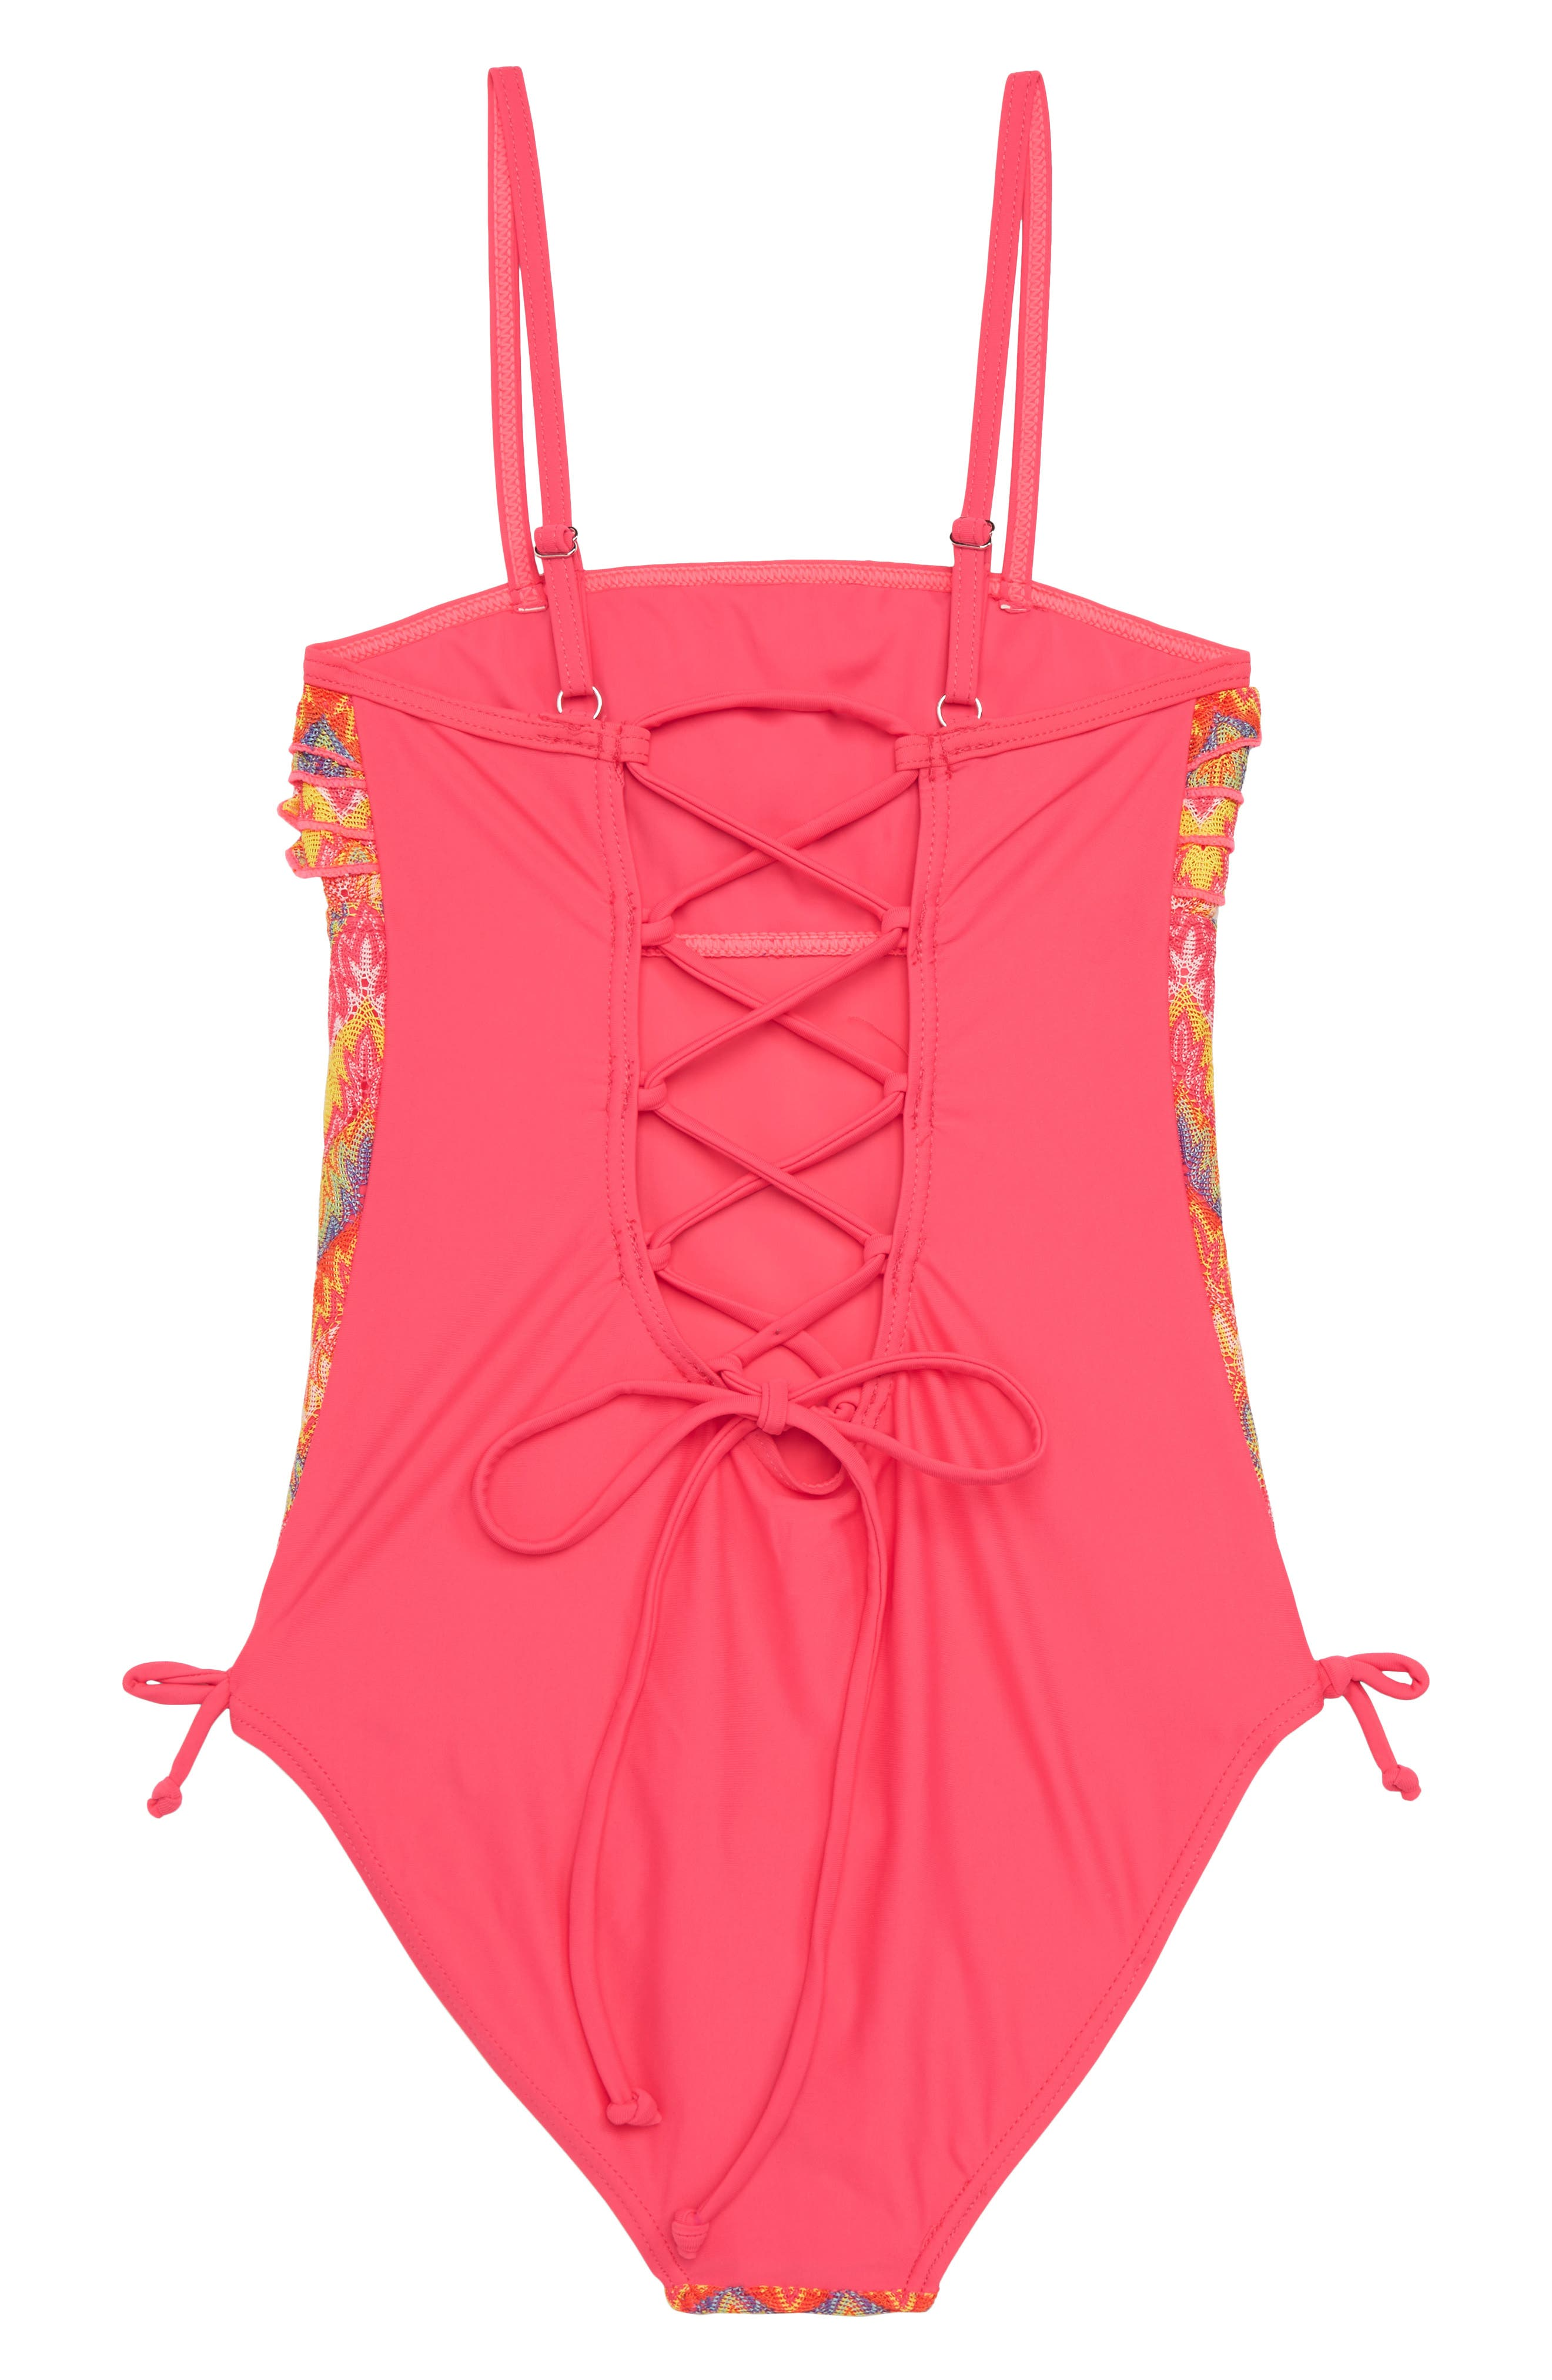 Flame Stitch Ruffle One-Piece Swimsuit,                             Alternate thumbnail 2, color,                             650